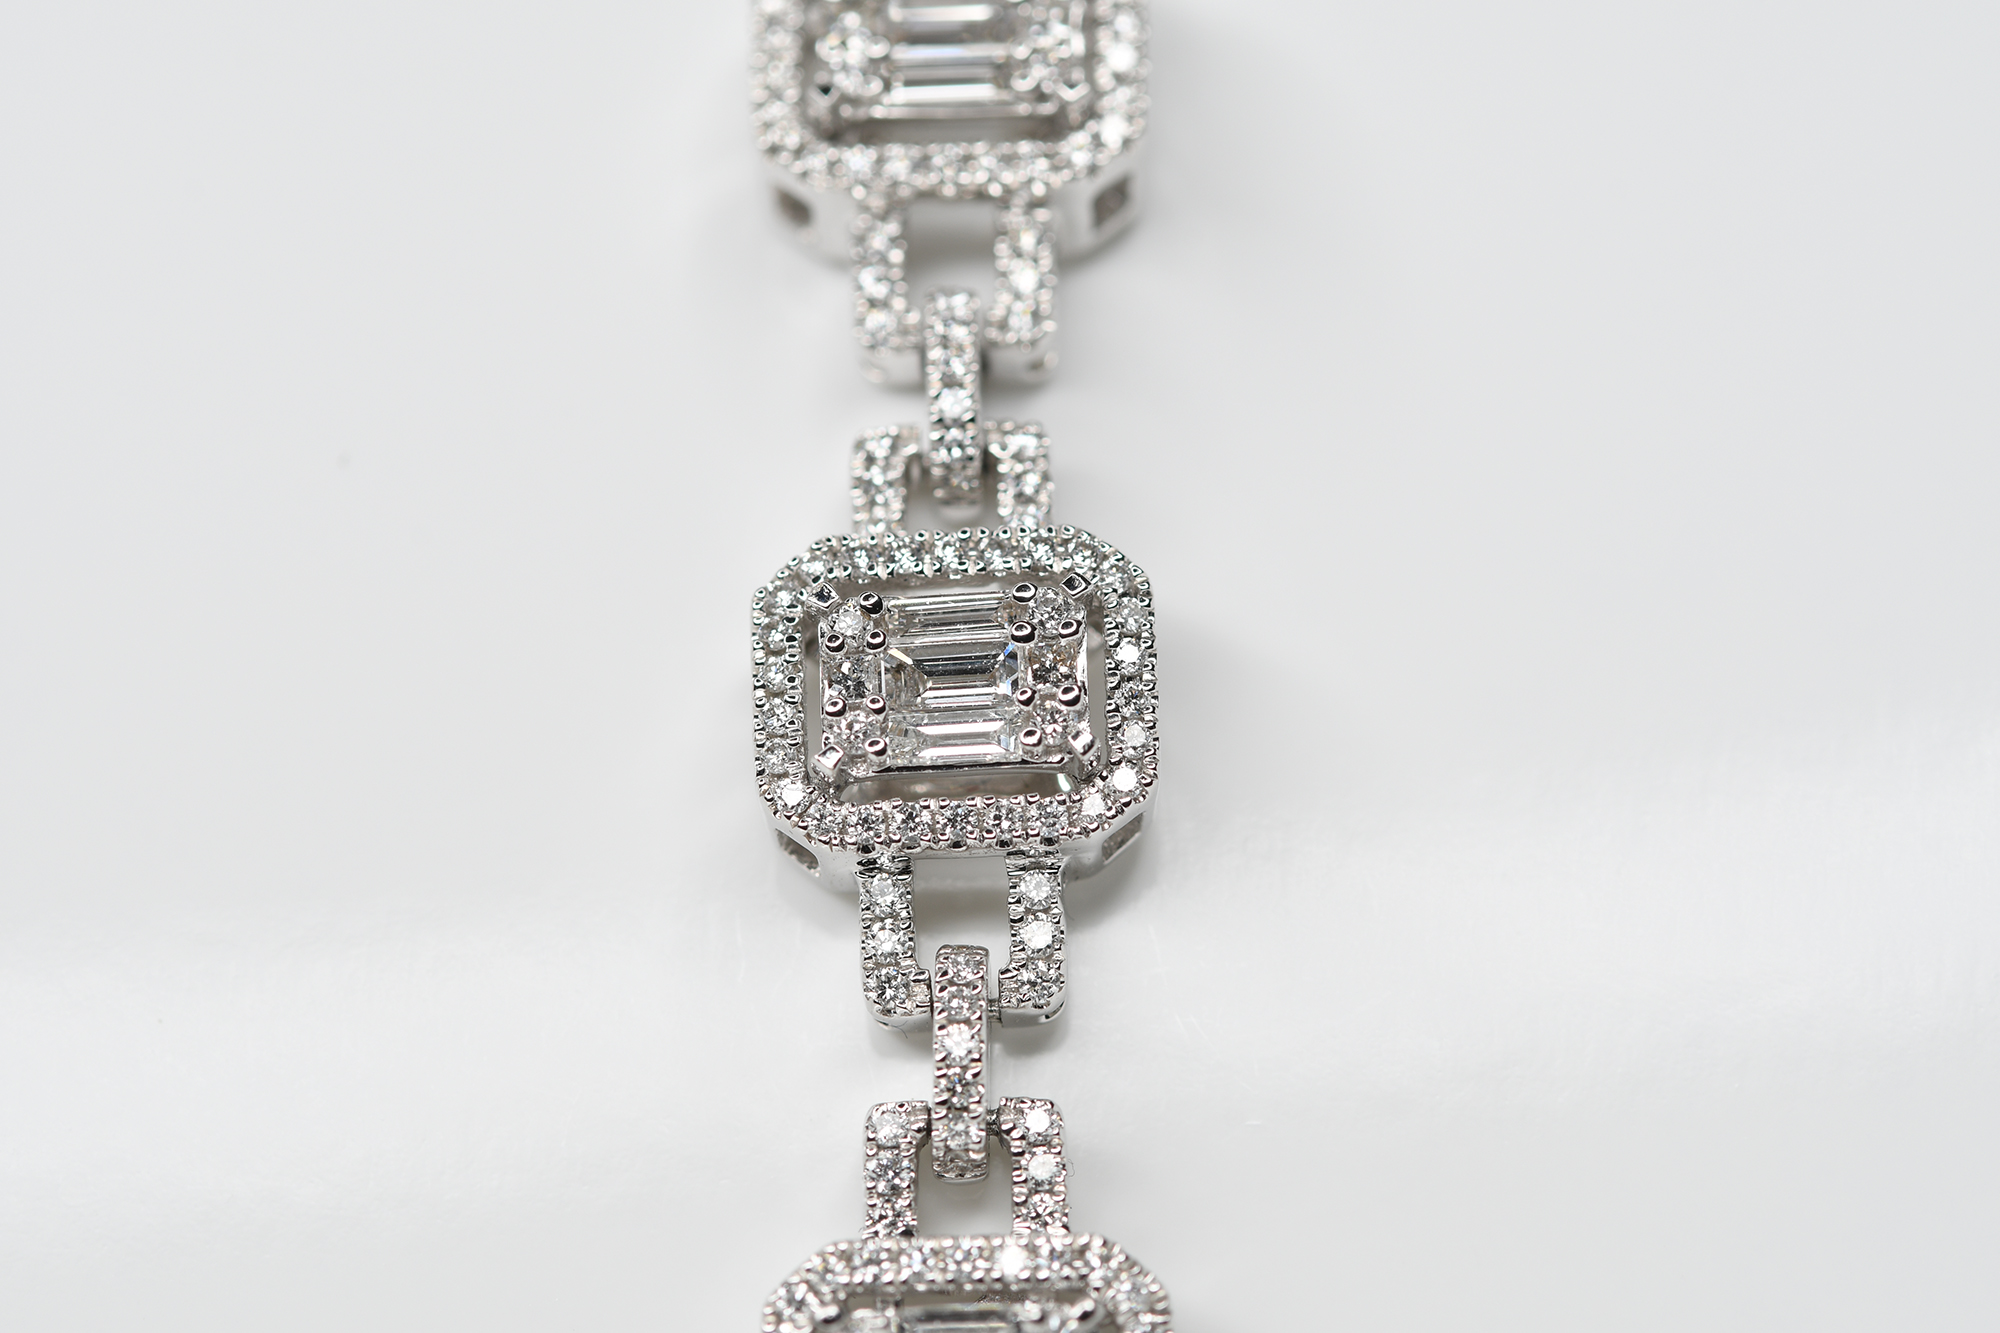 Diamond Bracelet - Image 3 of 3